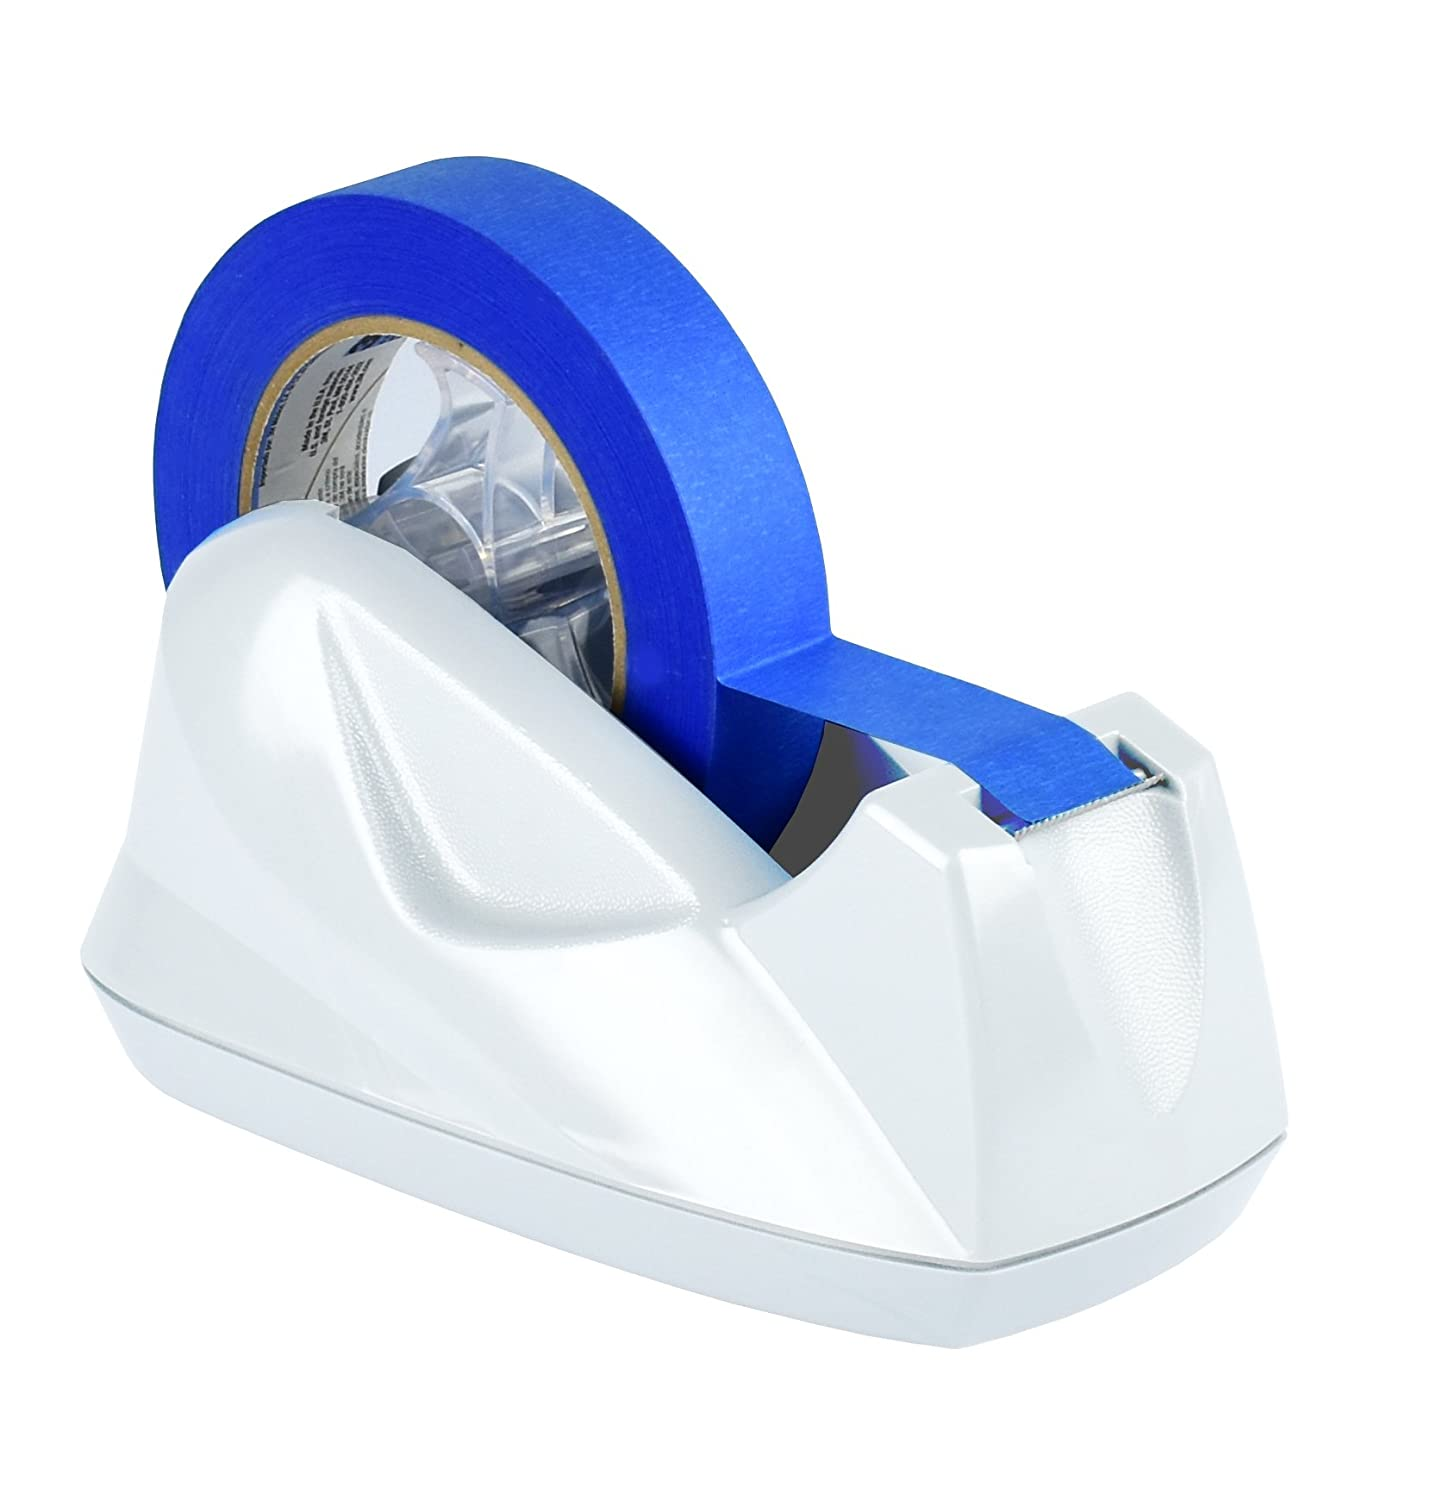 Acrimet Premium Tape Dispenser Jumbo (White Color) 271.8 Branco